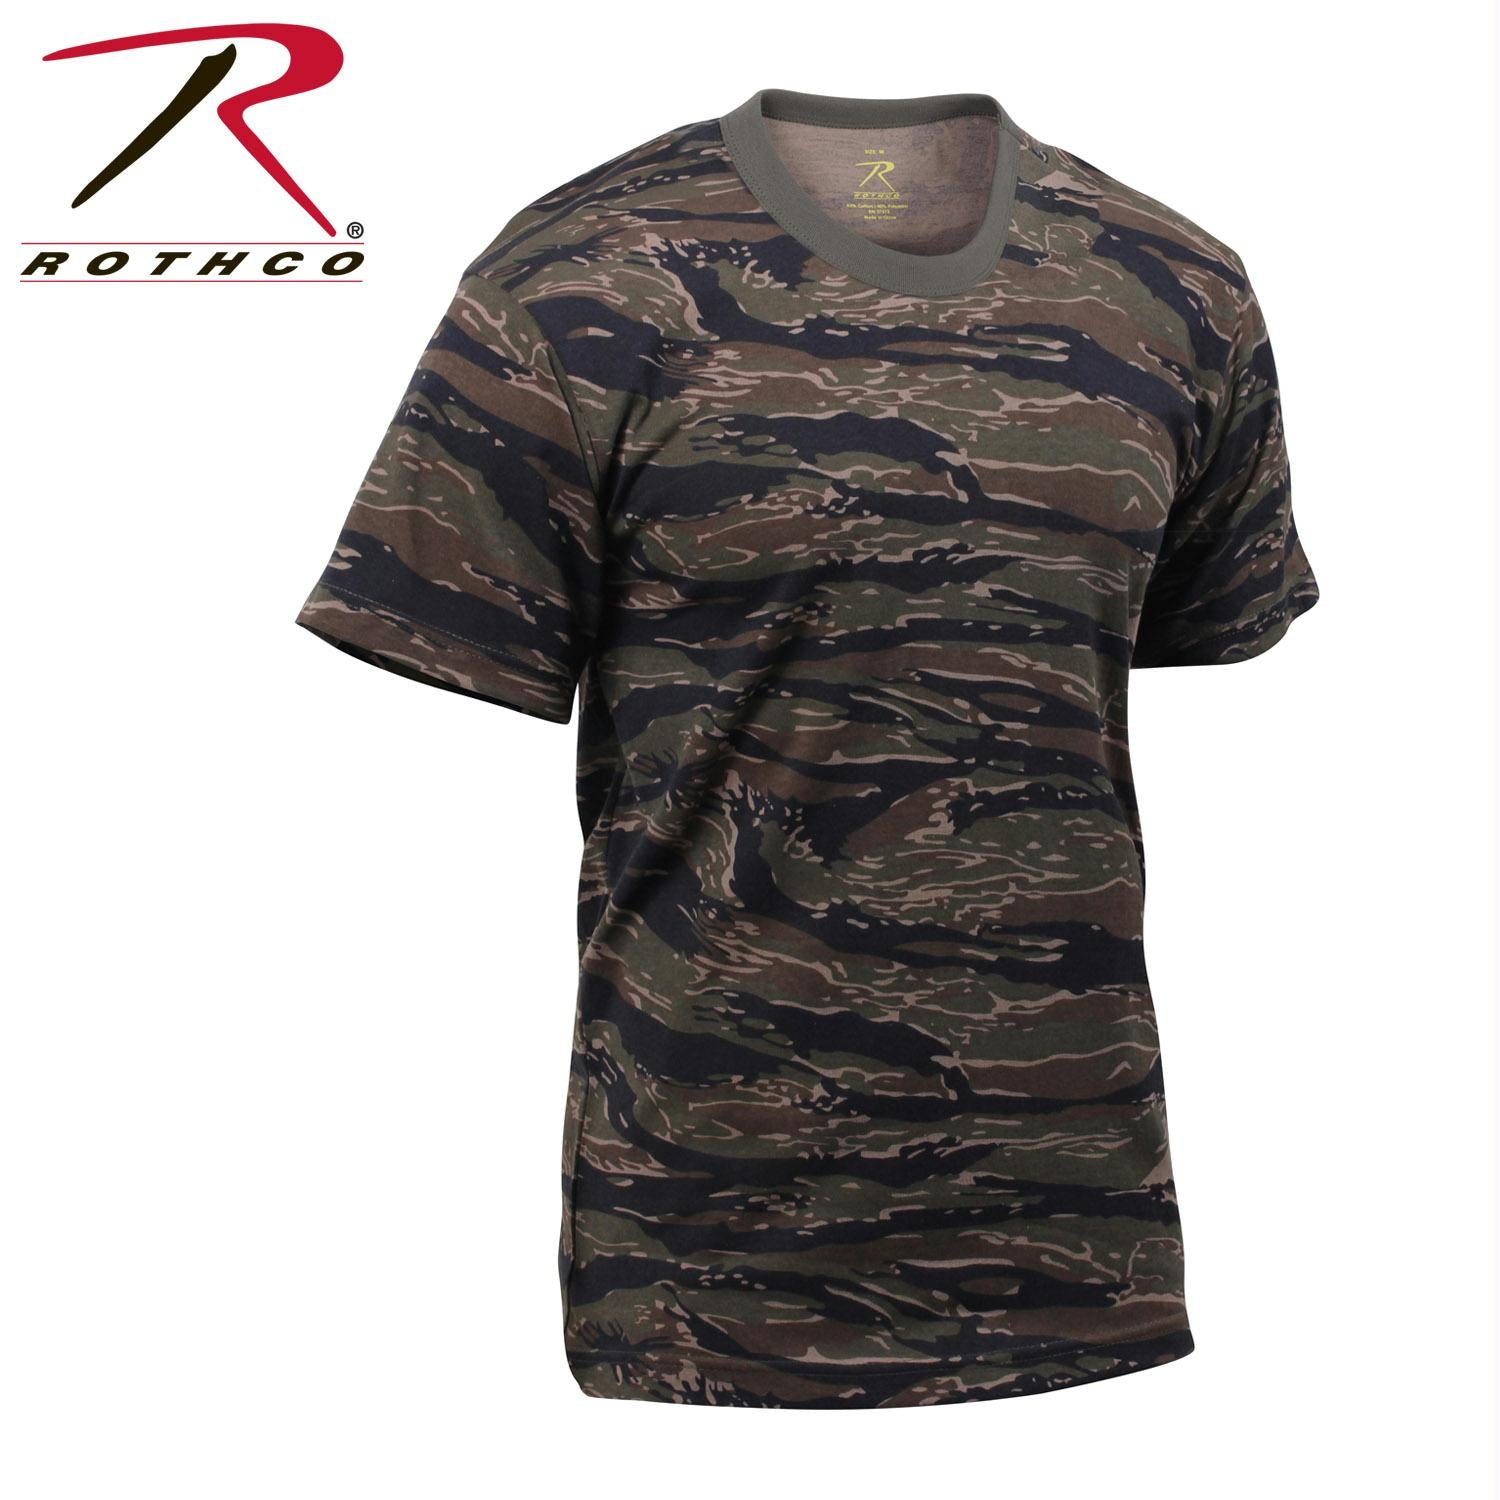 Rothco Tiger Stripe Camo T-Shirts - Tiger Stripe Camo / 4XL